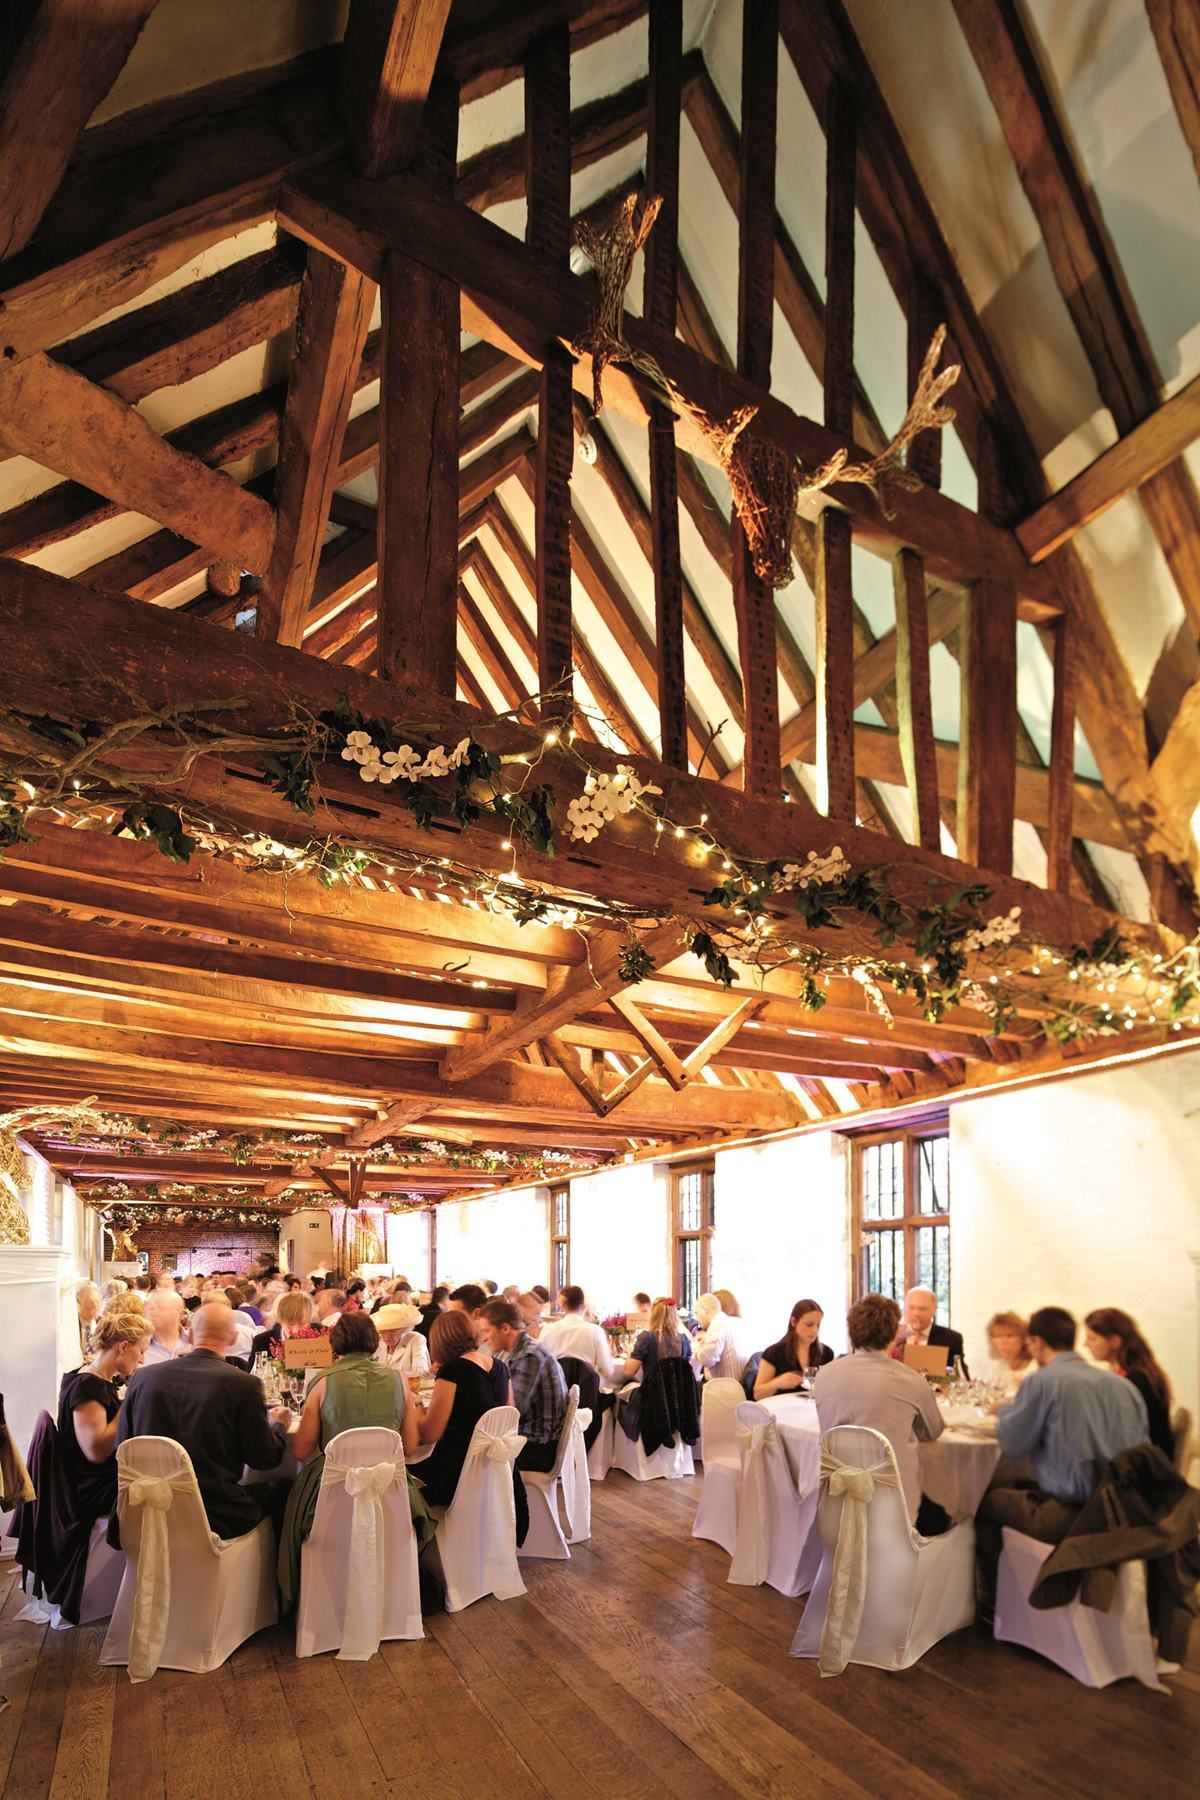 Tudor Barn Eltham Is An Ideal Venue For Your Wedding Celebrations